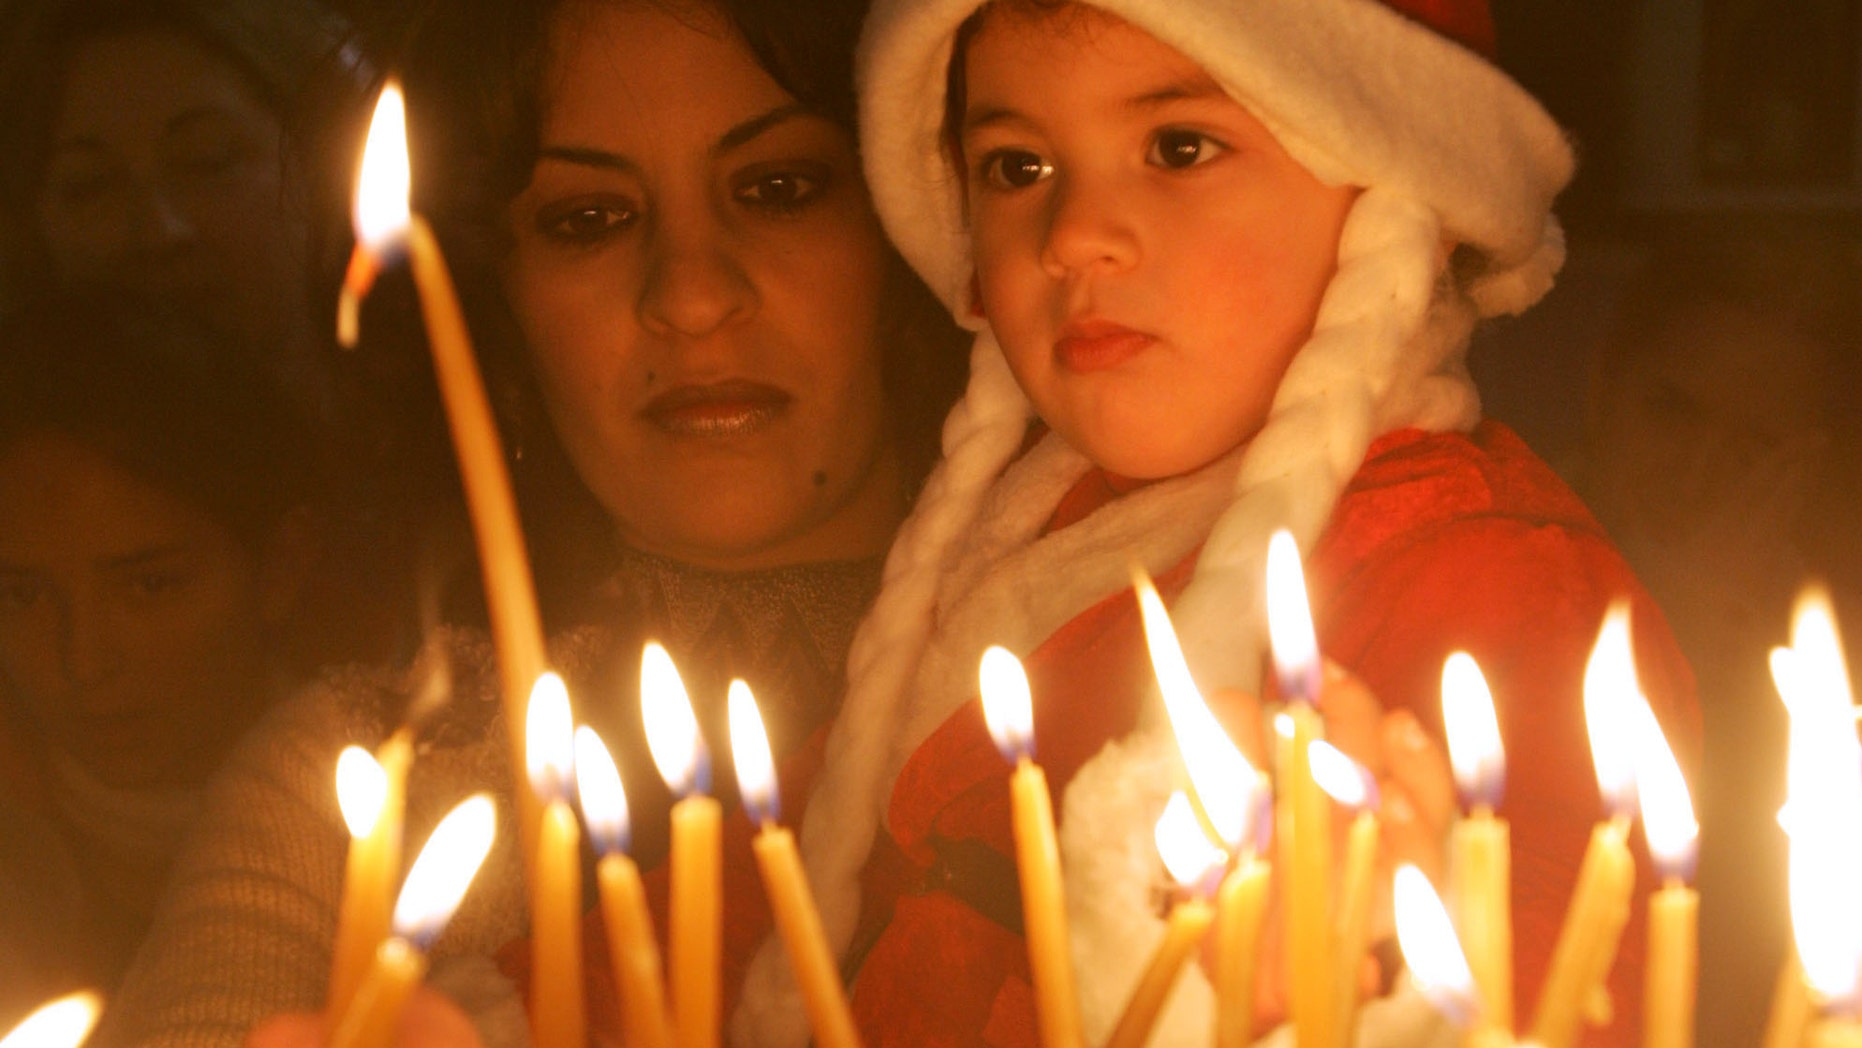 BETHLEHEM, WEST BANK - DECEMBER 24:  Iman Haddid and her 2-year-old daughter Dallah light votive candles at the Church of the Nativity December 24, 2004 in the biblical town of Bethlehem in the West Bank. A smaller crowd than in prevous years gathered in Manger Square for the start of the Christmas festivities at the traditional birthplace of Jesus with the local Palestinian governor blaming Israel for not easing security restrictions in time.  (Photo by David Silverman/Getty Images)